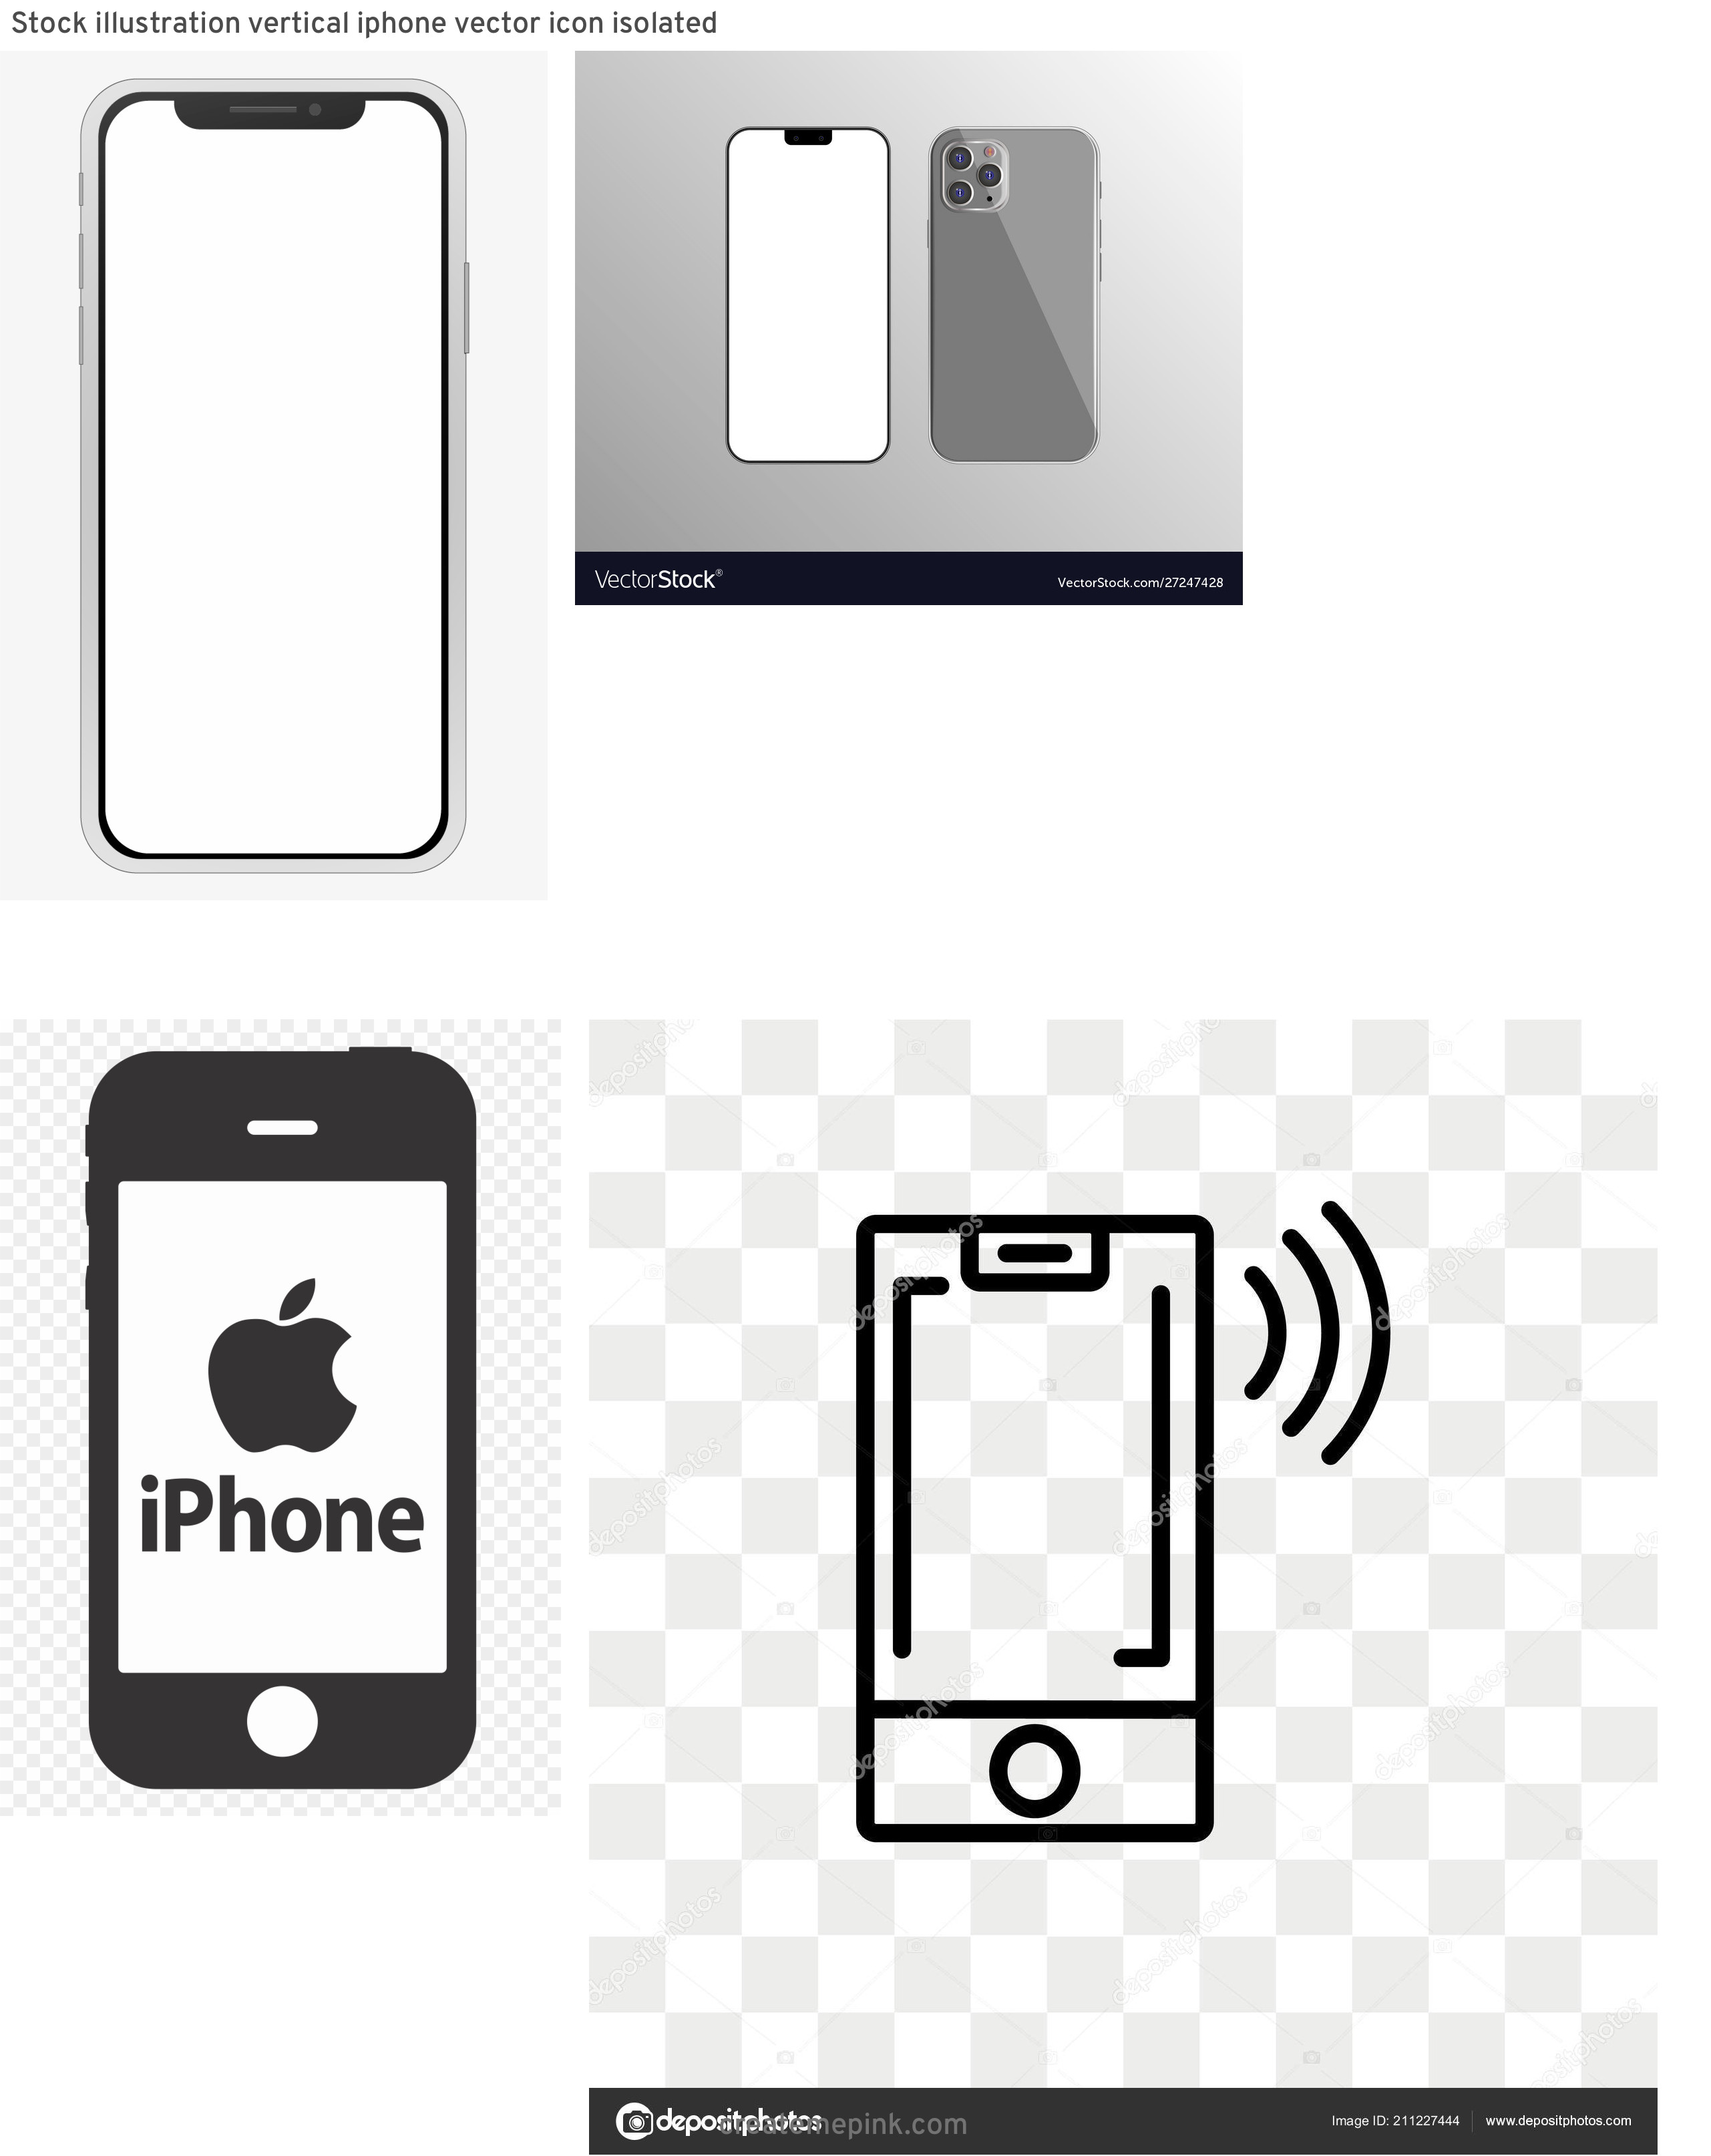 IPhone Vector Transparent Background: Stock Illustration Vertical Iphone Vector Icon Isolated